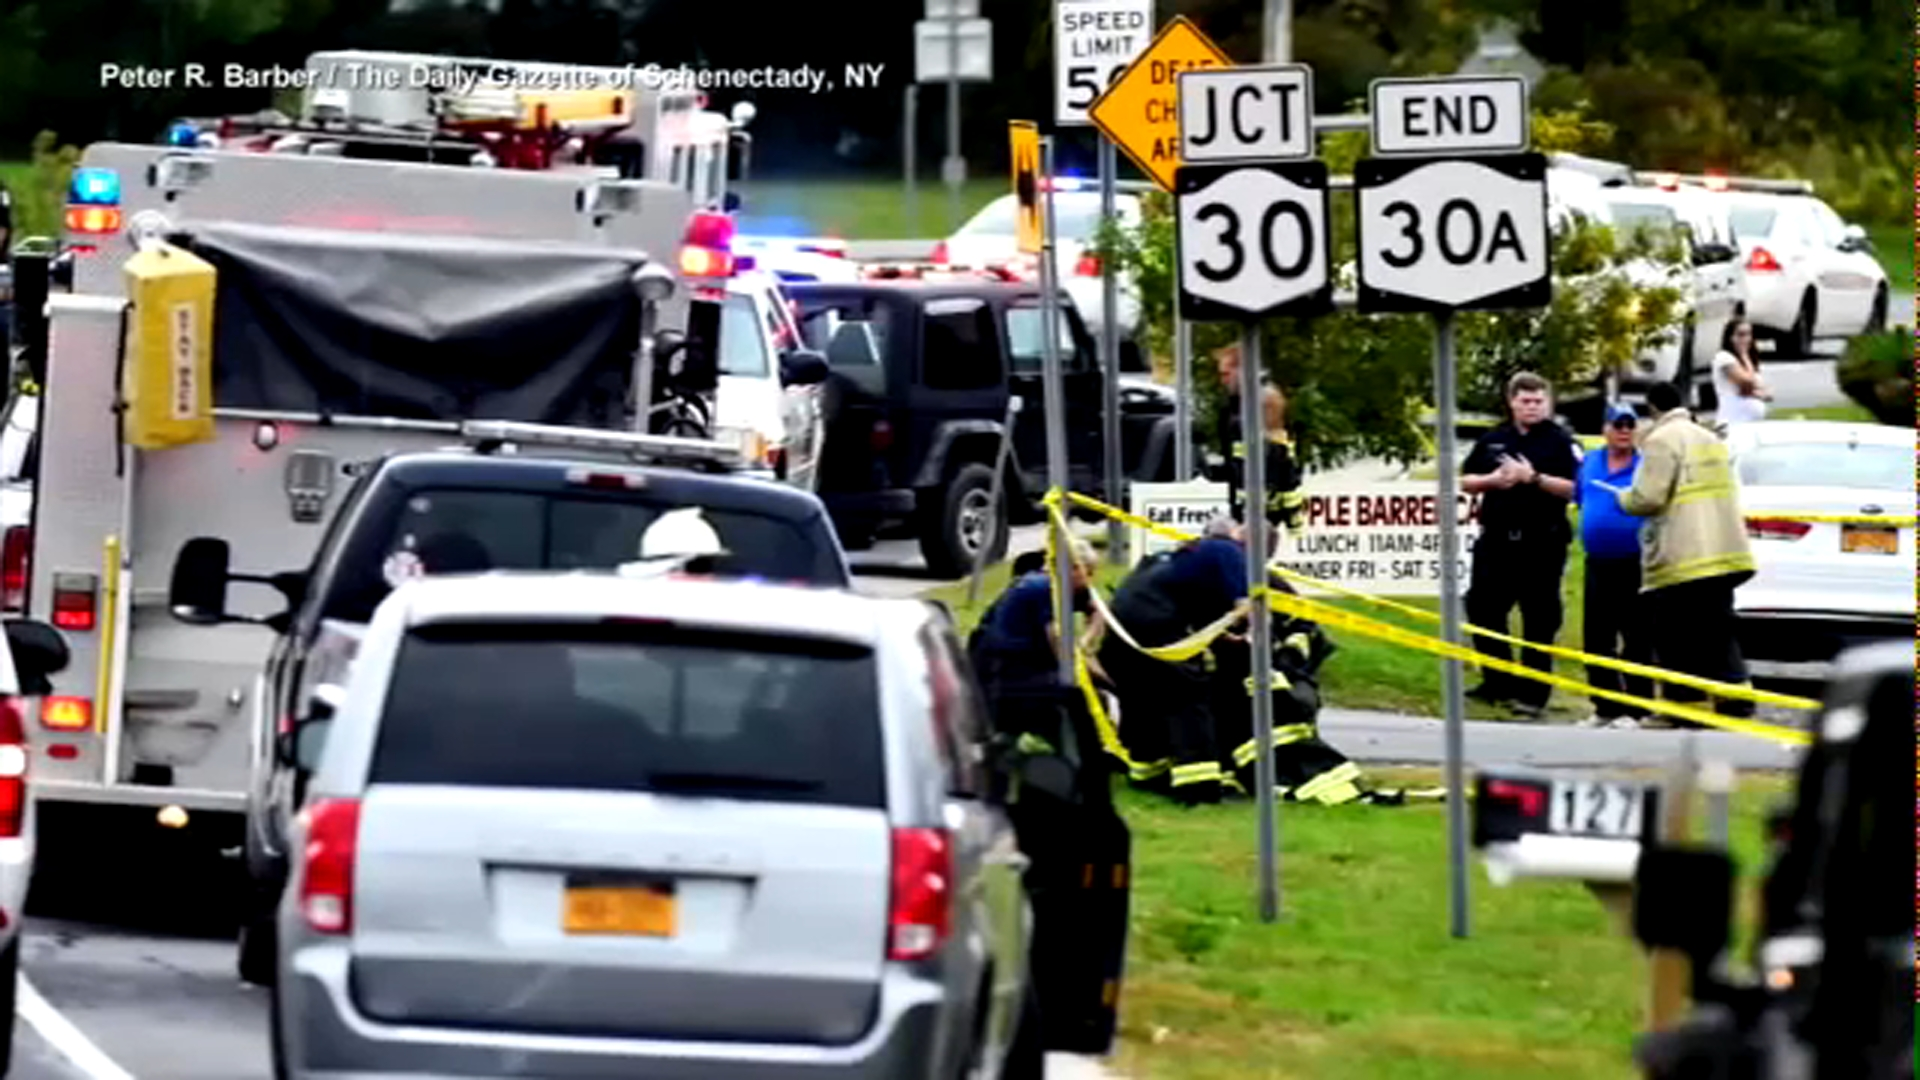 Cuomo Limo That Crashed Shouldnt Have Been On The Road